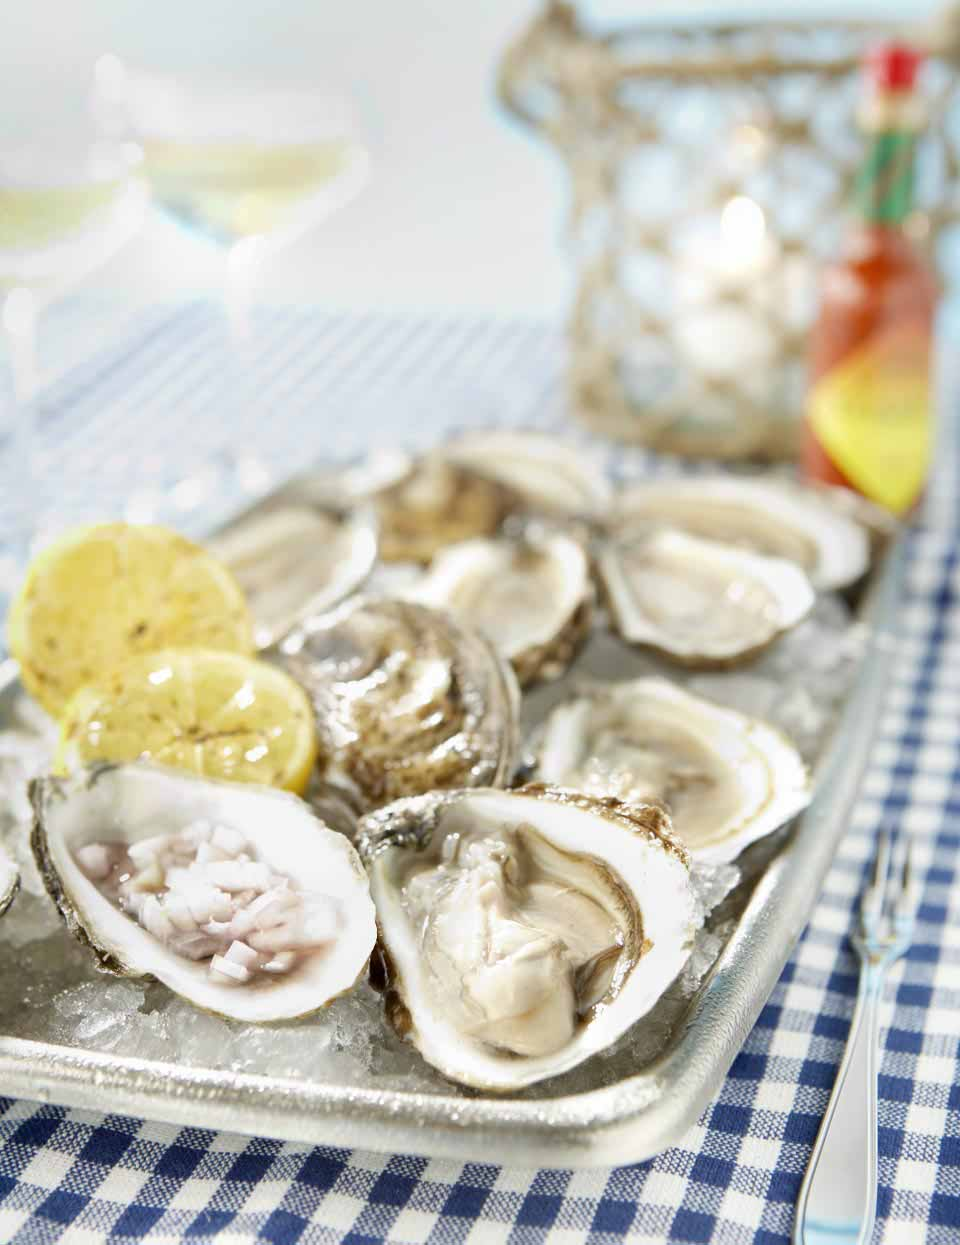 Oysters_Cropped